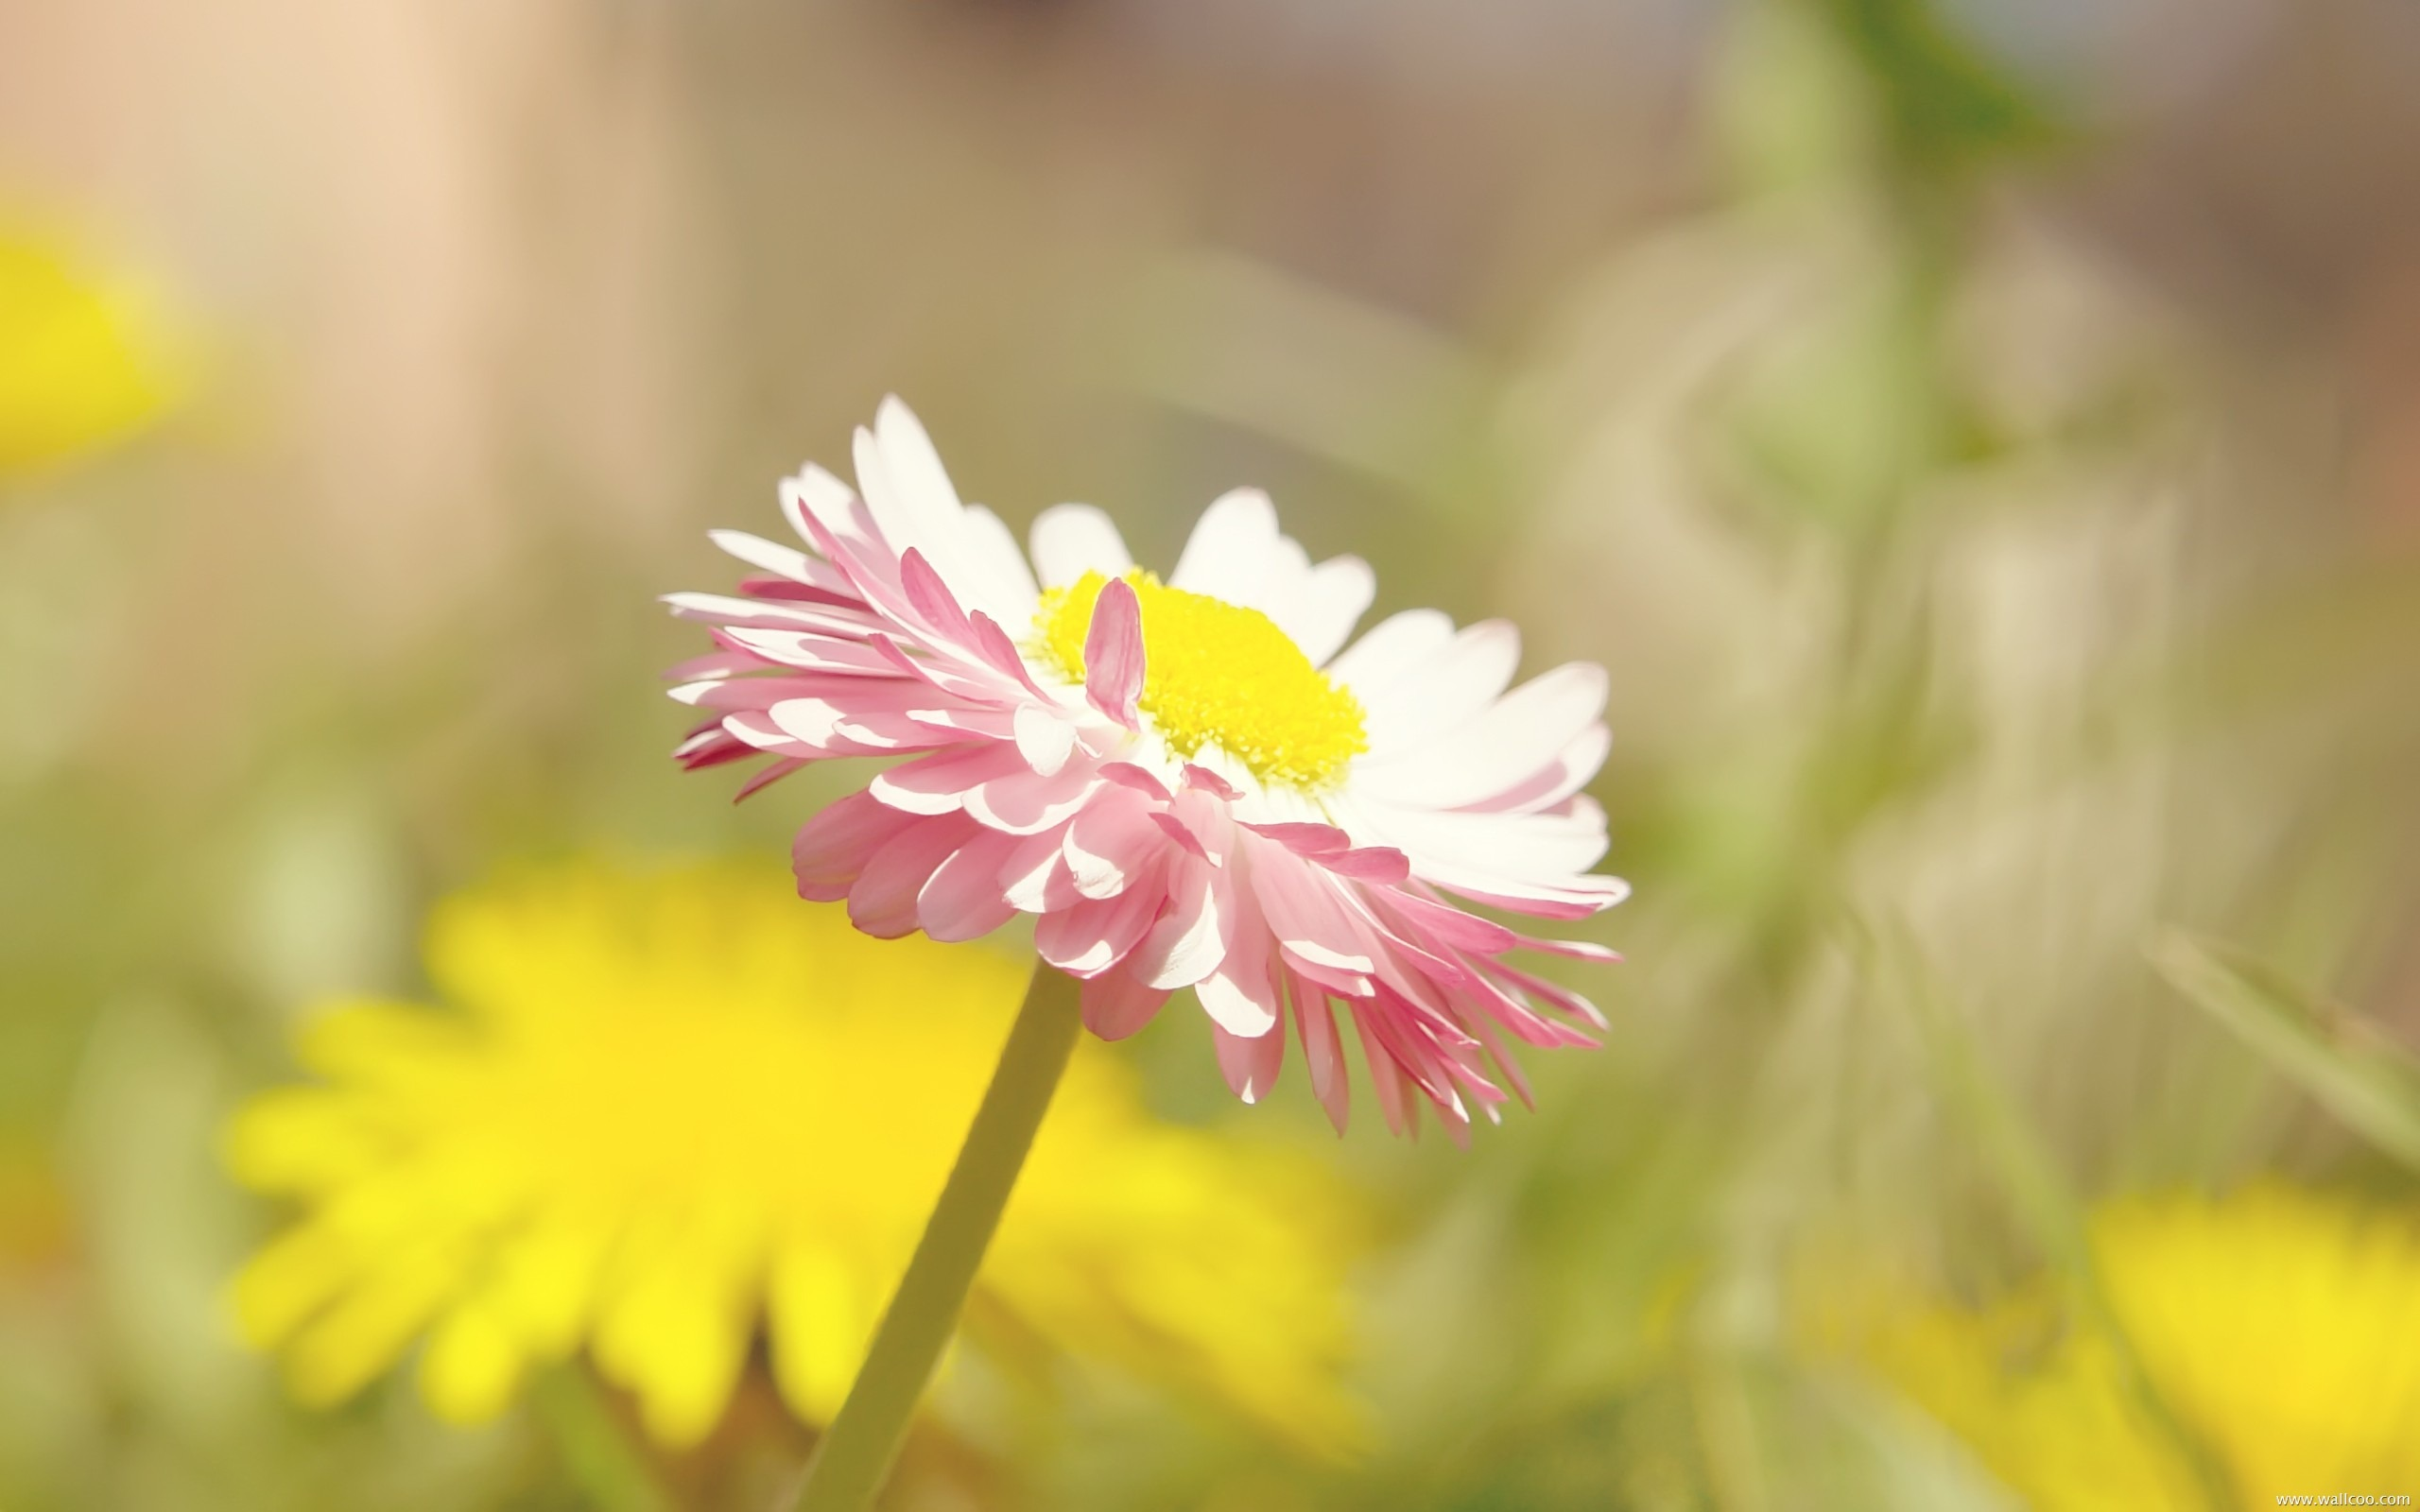 Little daisy fresh and natural flowers desktop wallpapers preview original resolution 2560x1600 izmirmasajfo